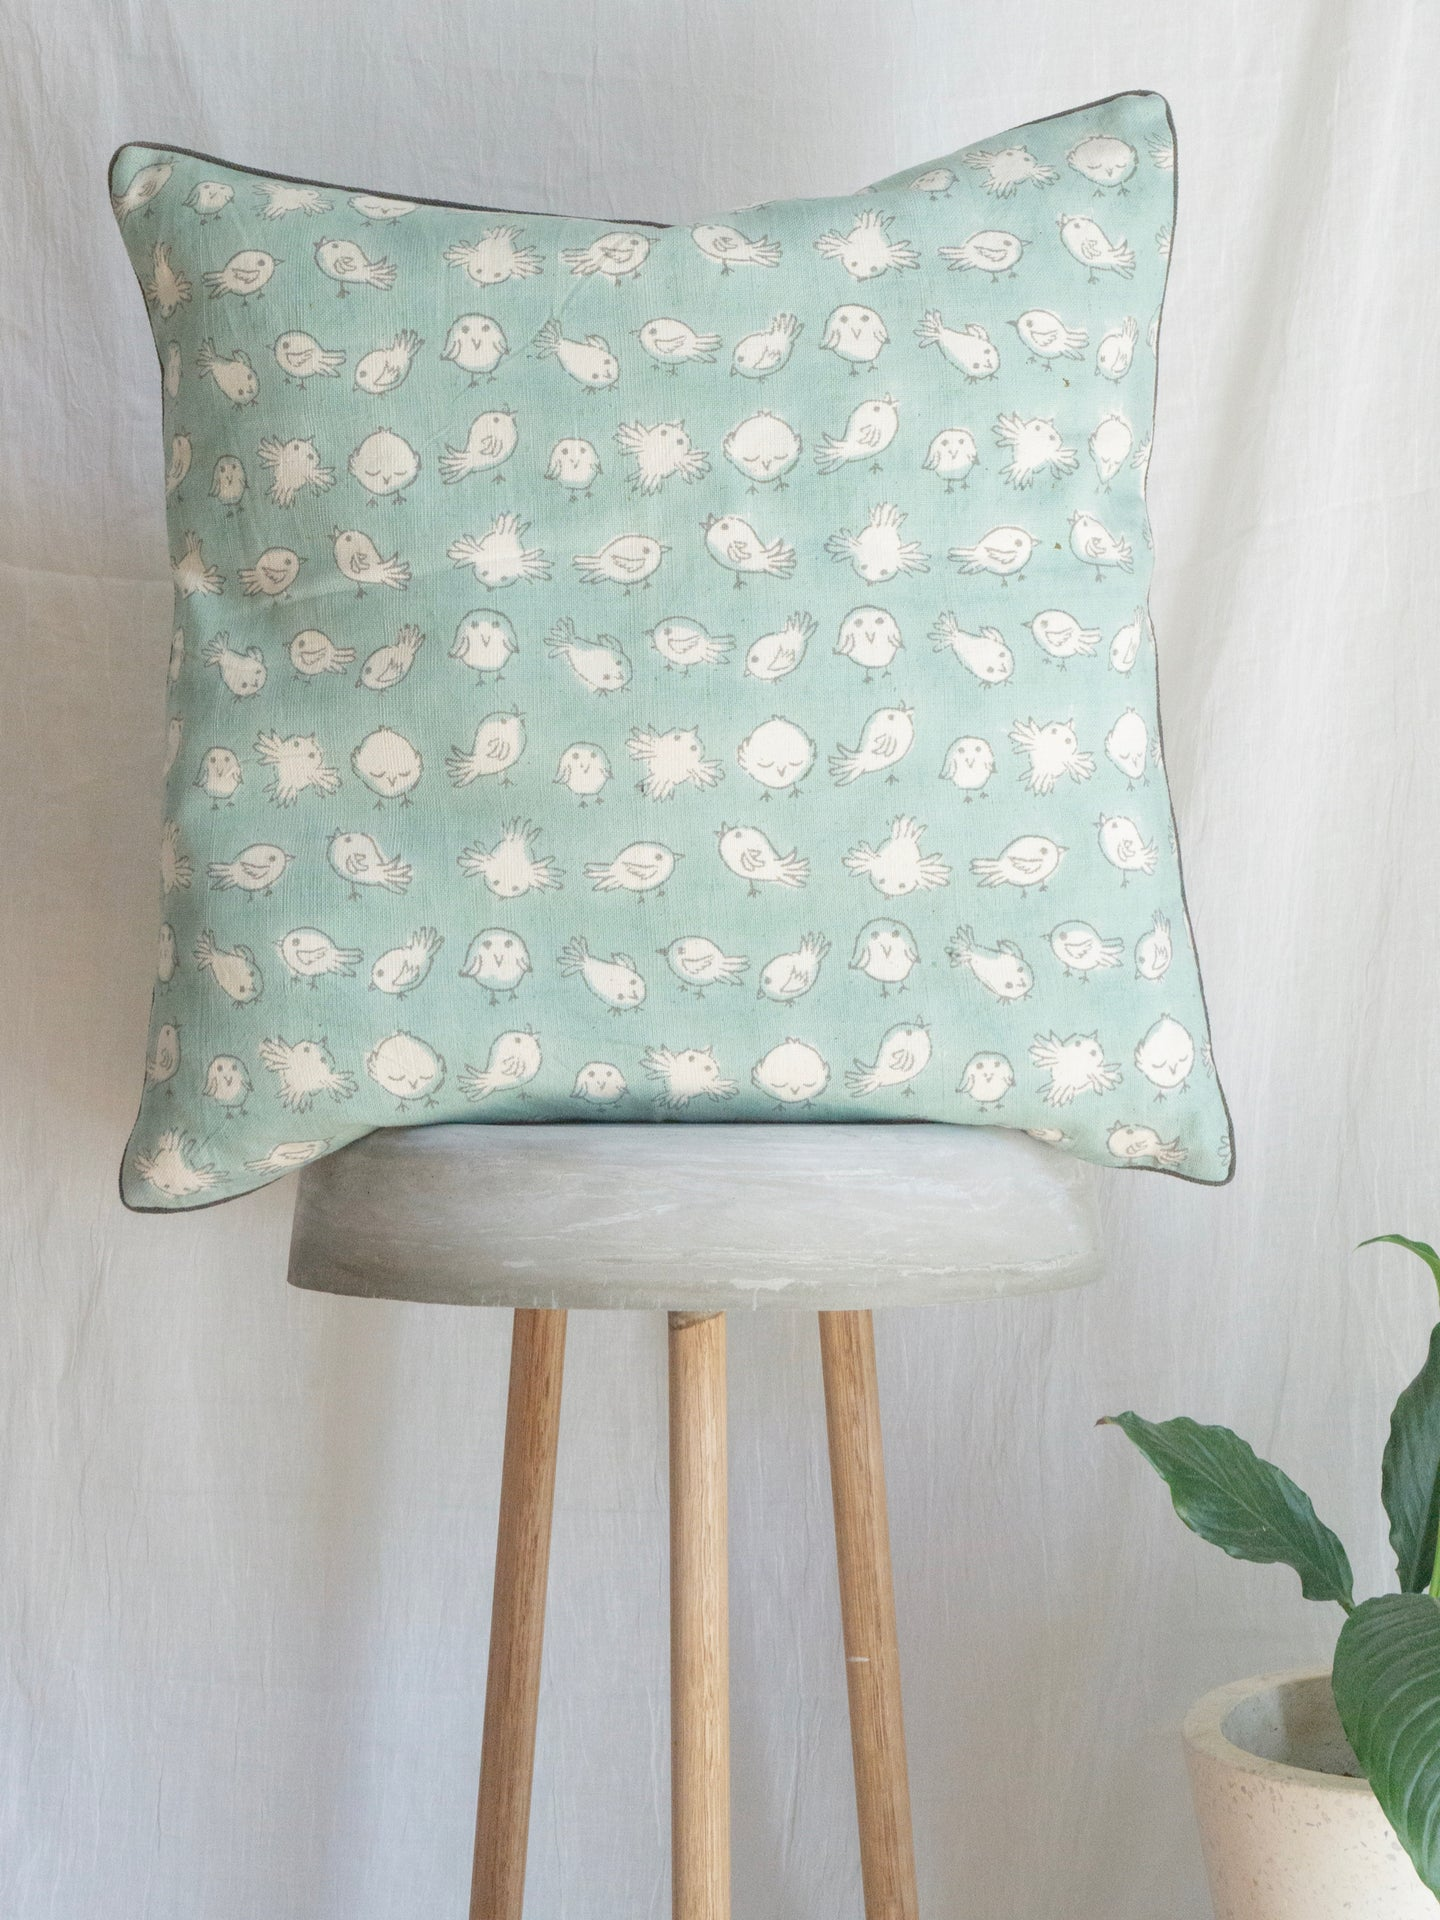 Linen Cushion Cover With Birdies